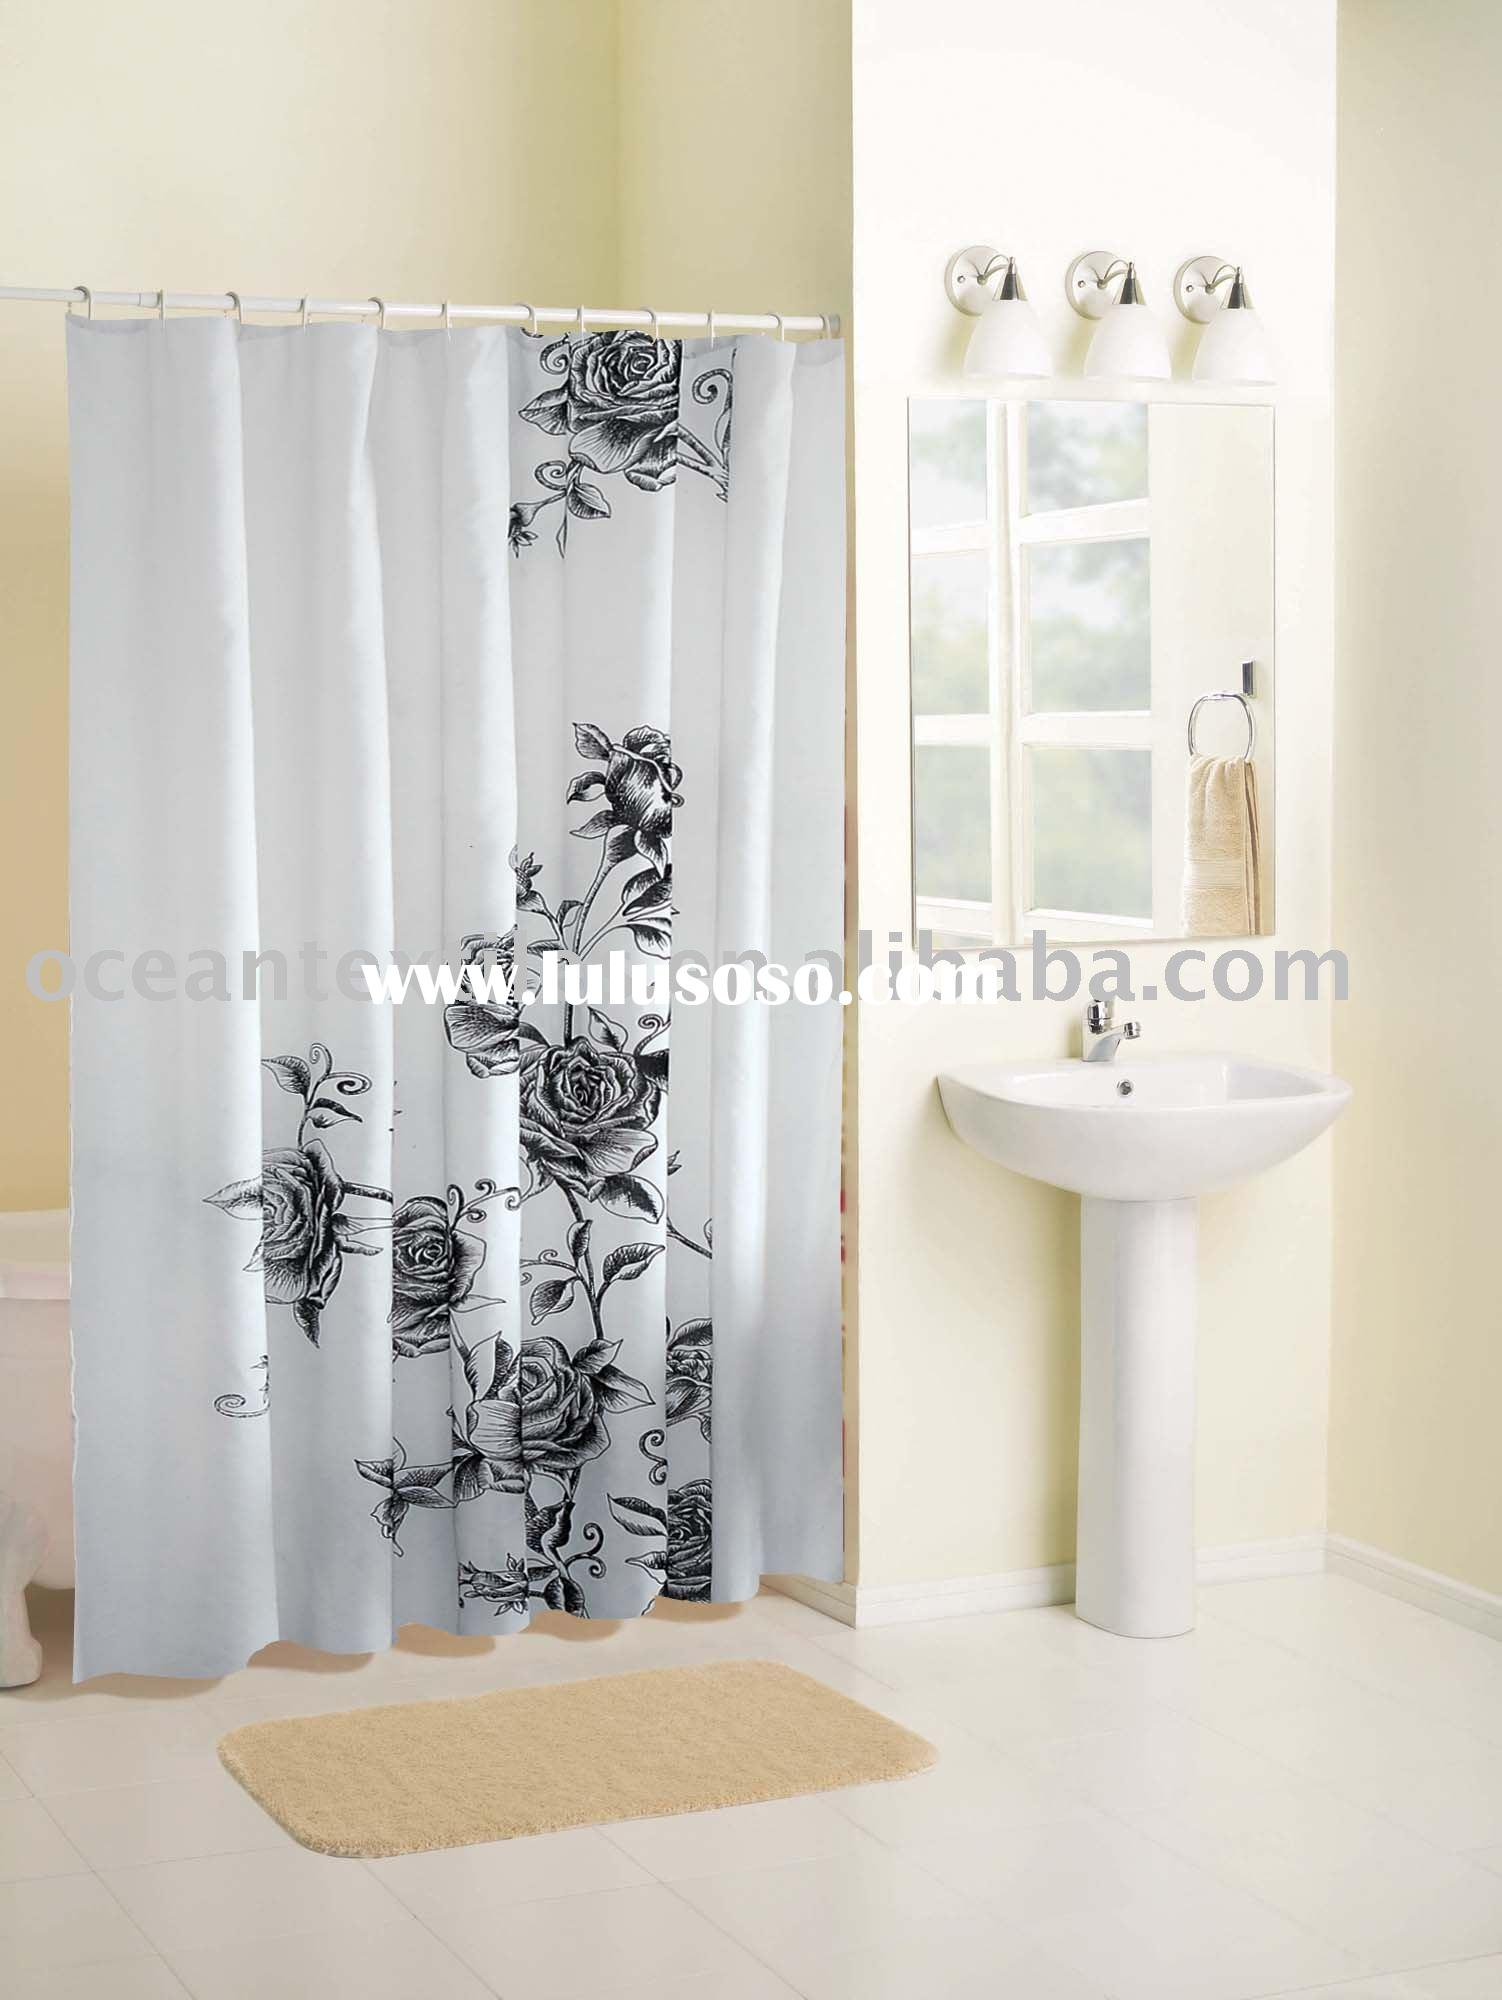 peach shower curtain sets peach shower curtain sets